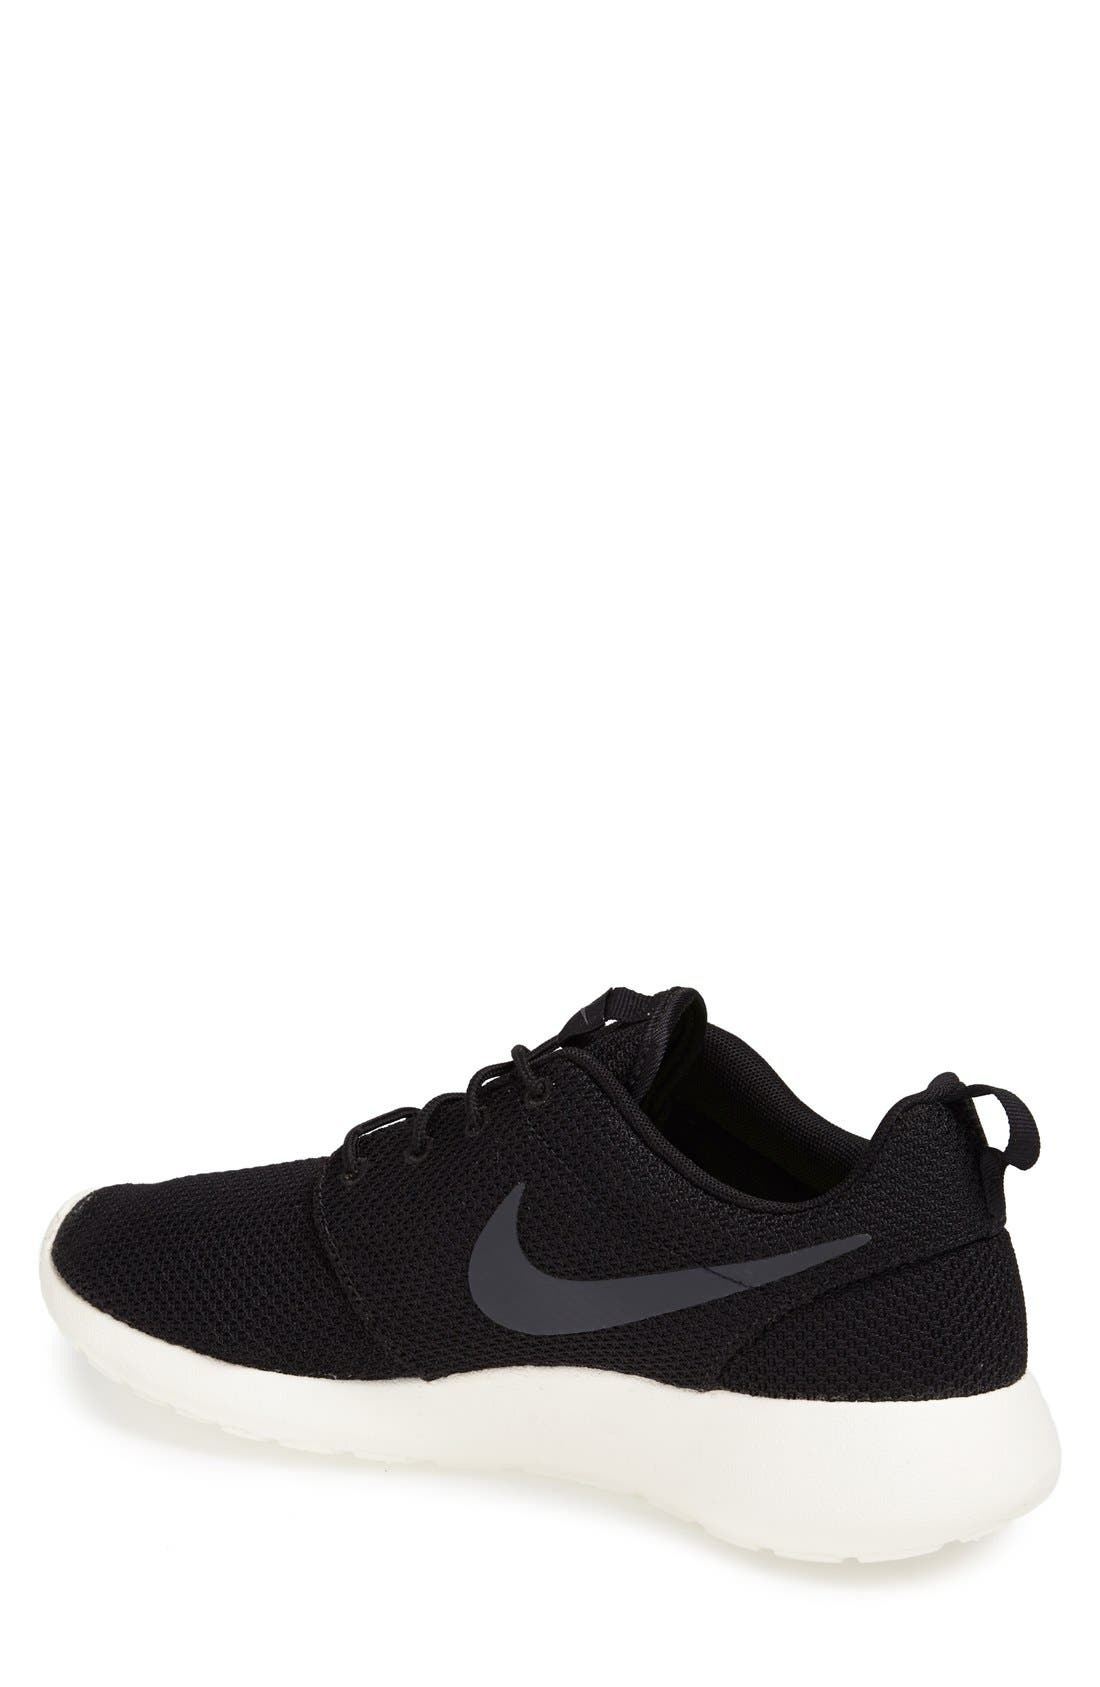 'Roshe Run' Sneaker,                             Alternate thumbnail 2, color,                             Black/ Anthracite/ Sail